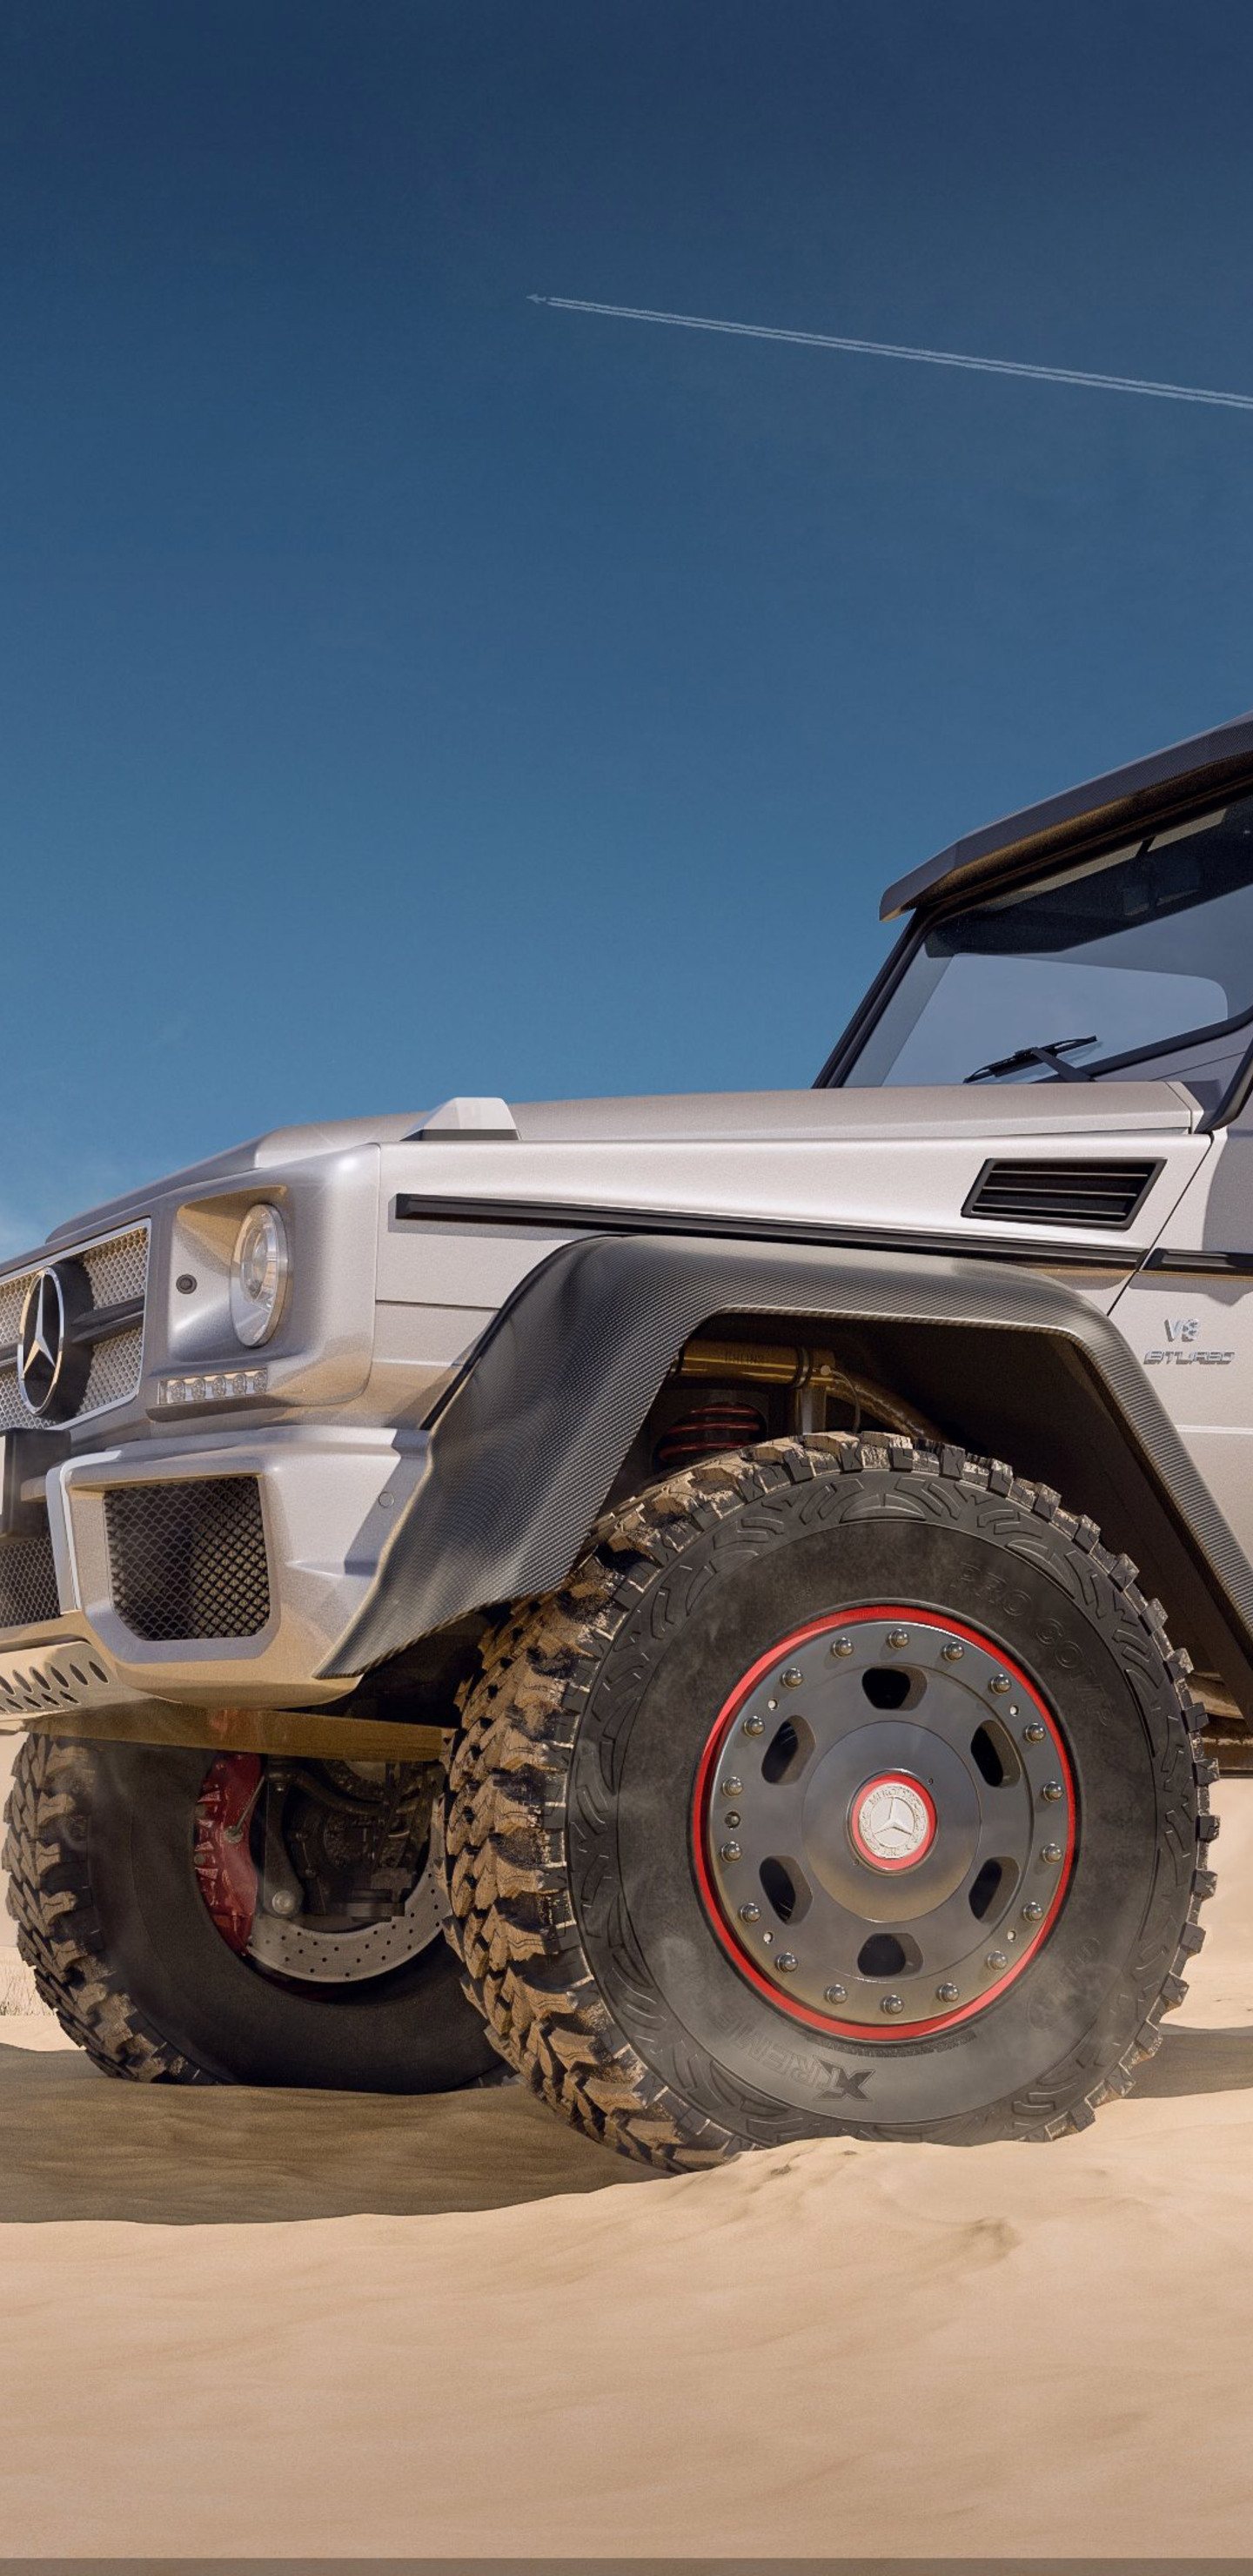 1440x2960 Mercedes Benz Amg G63 6x6 Samsung Galaxy Note 9 8 S9 S8 S8 Qhd Hd 4k Wallpapers Images Backgrounds Photos And Pictures